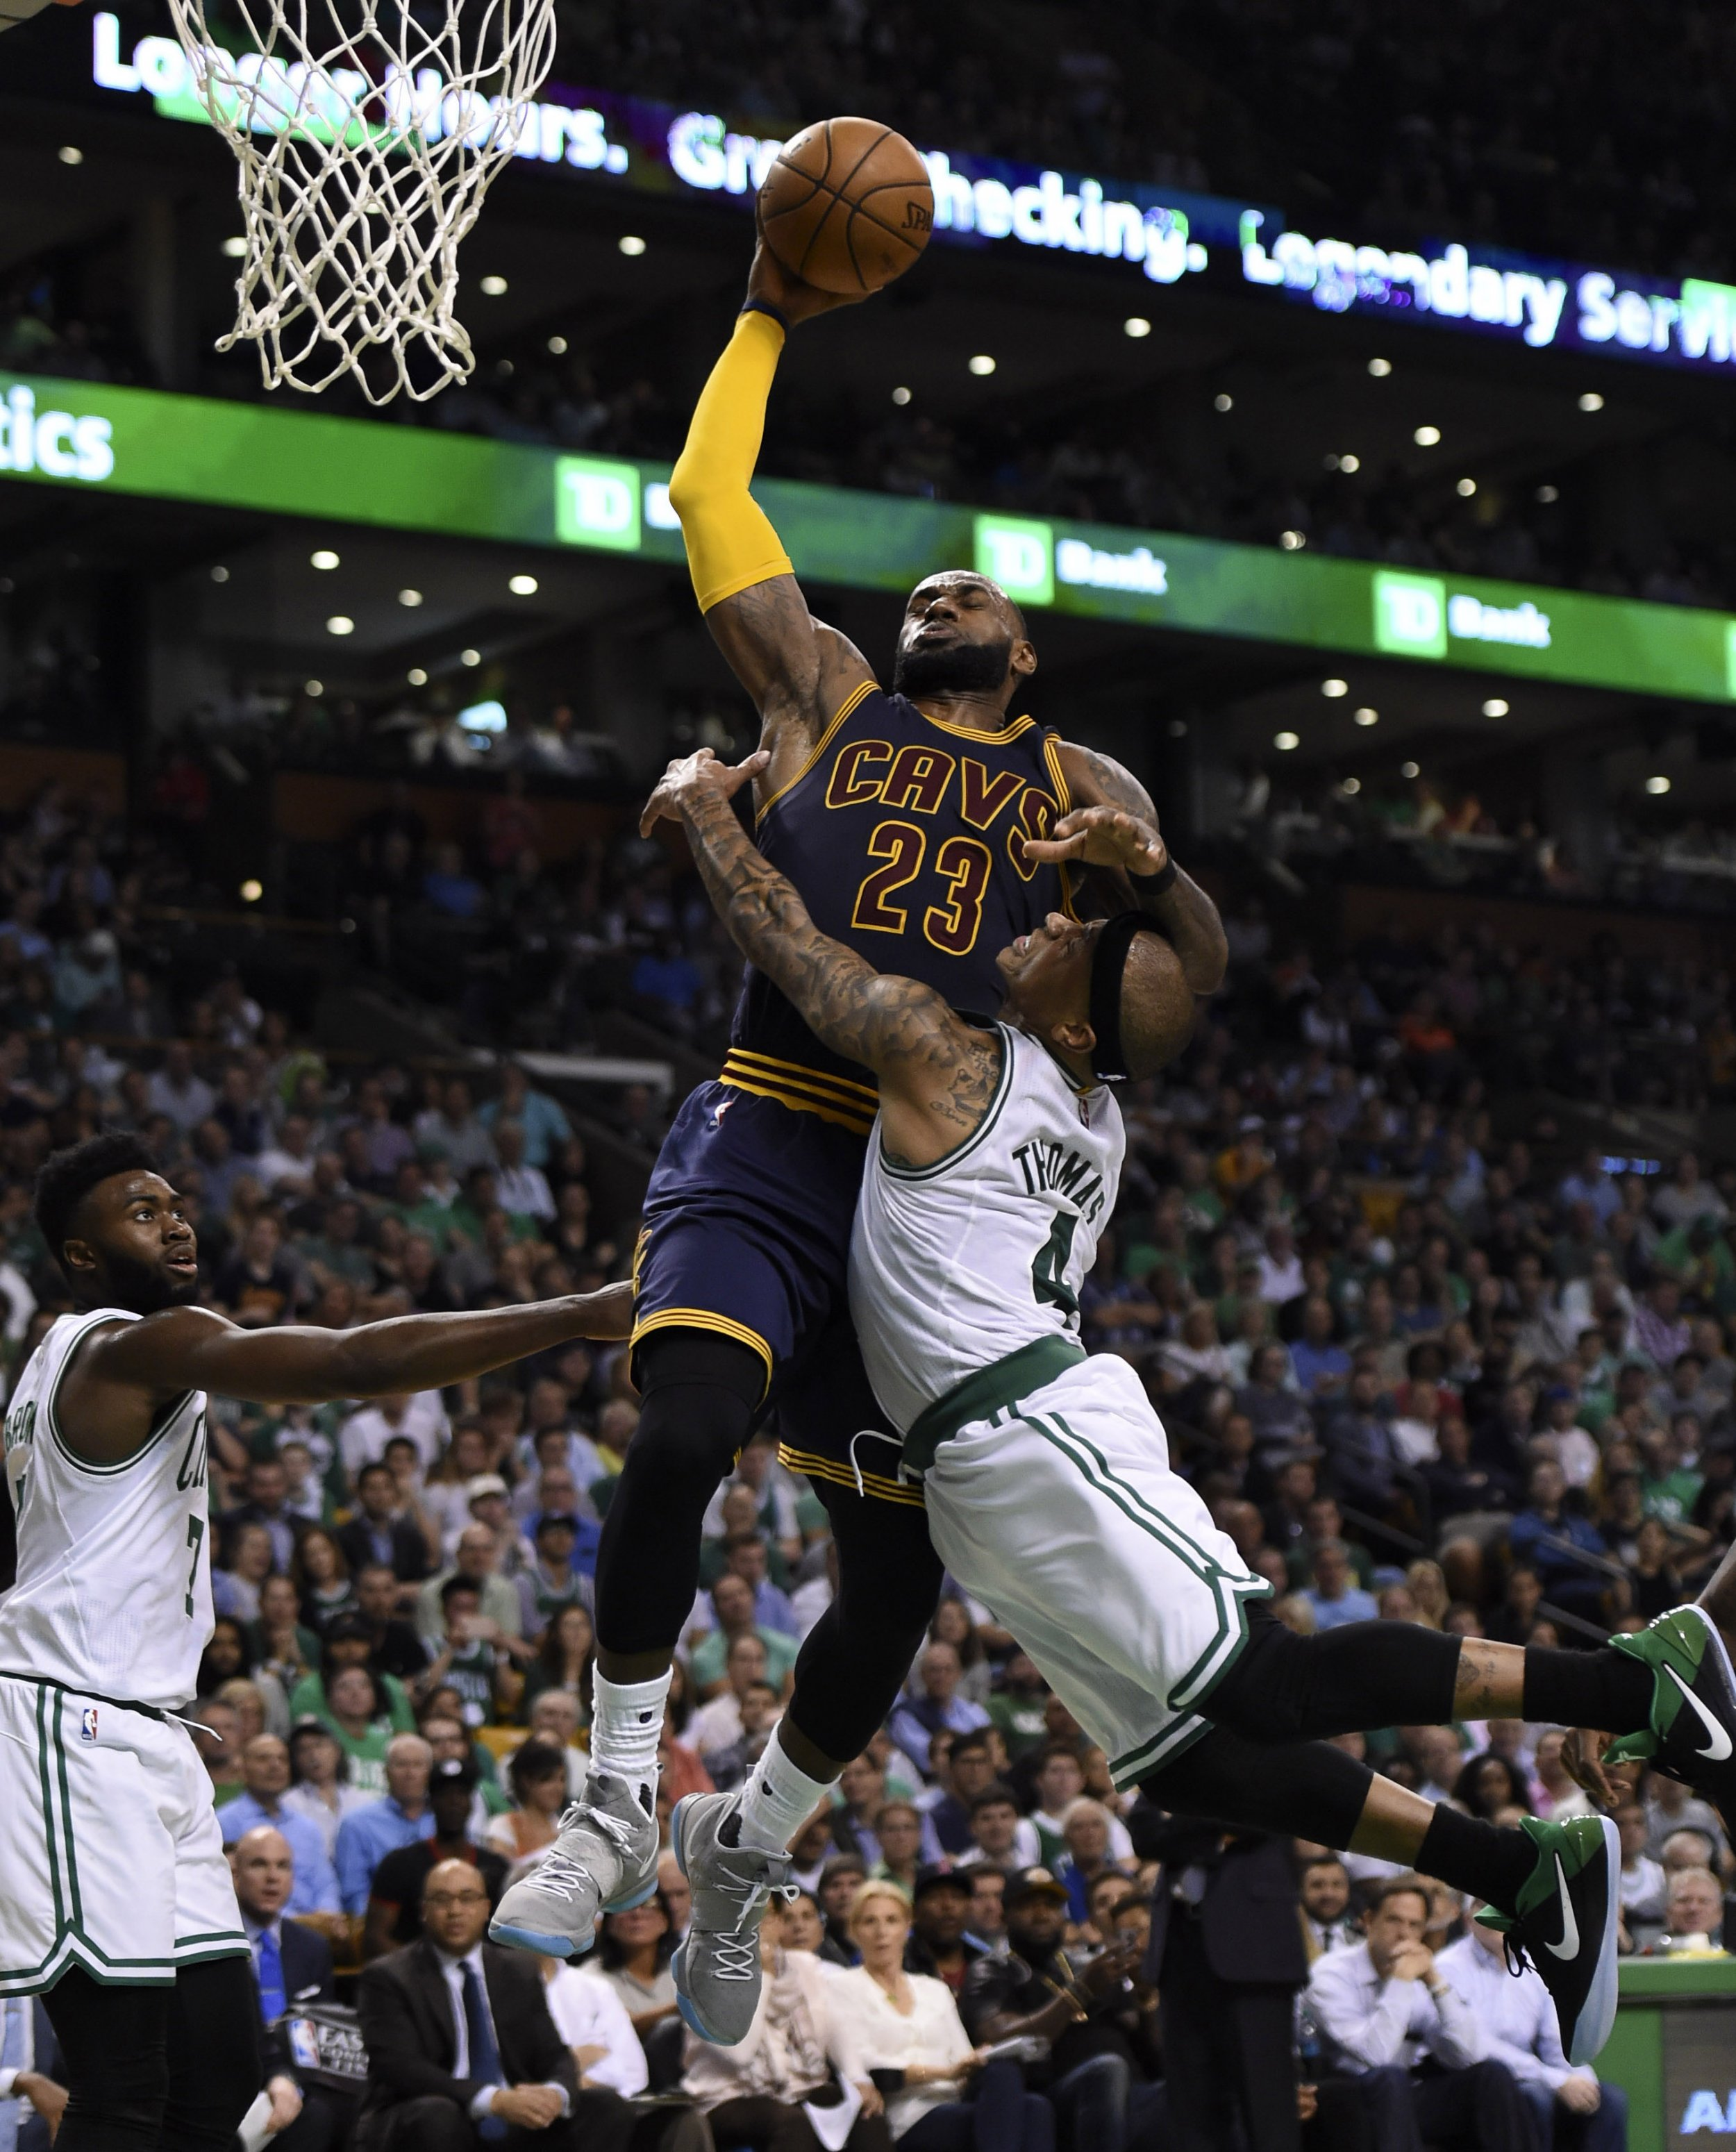 ca9441c1007 The 2017 Eastern Conference finals summarized in one photo. USA TODAY SPORTS